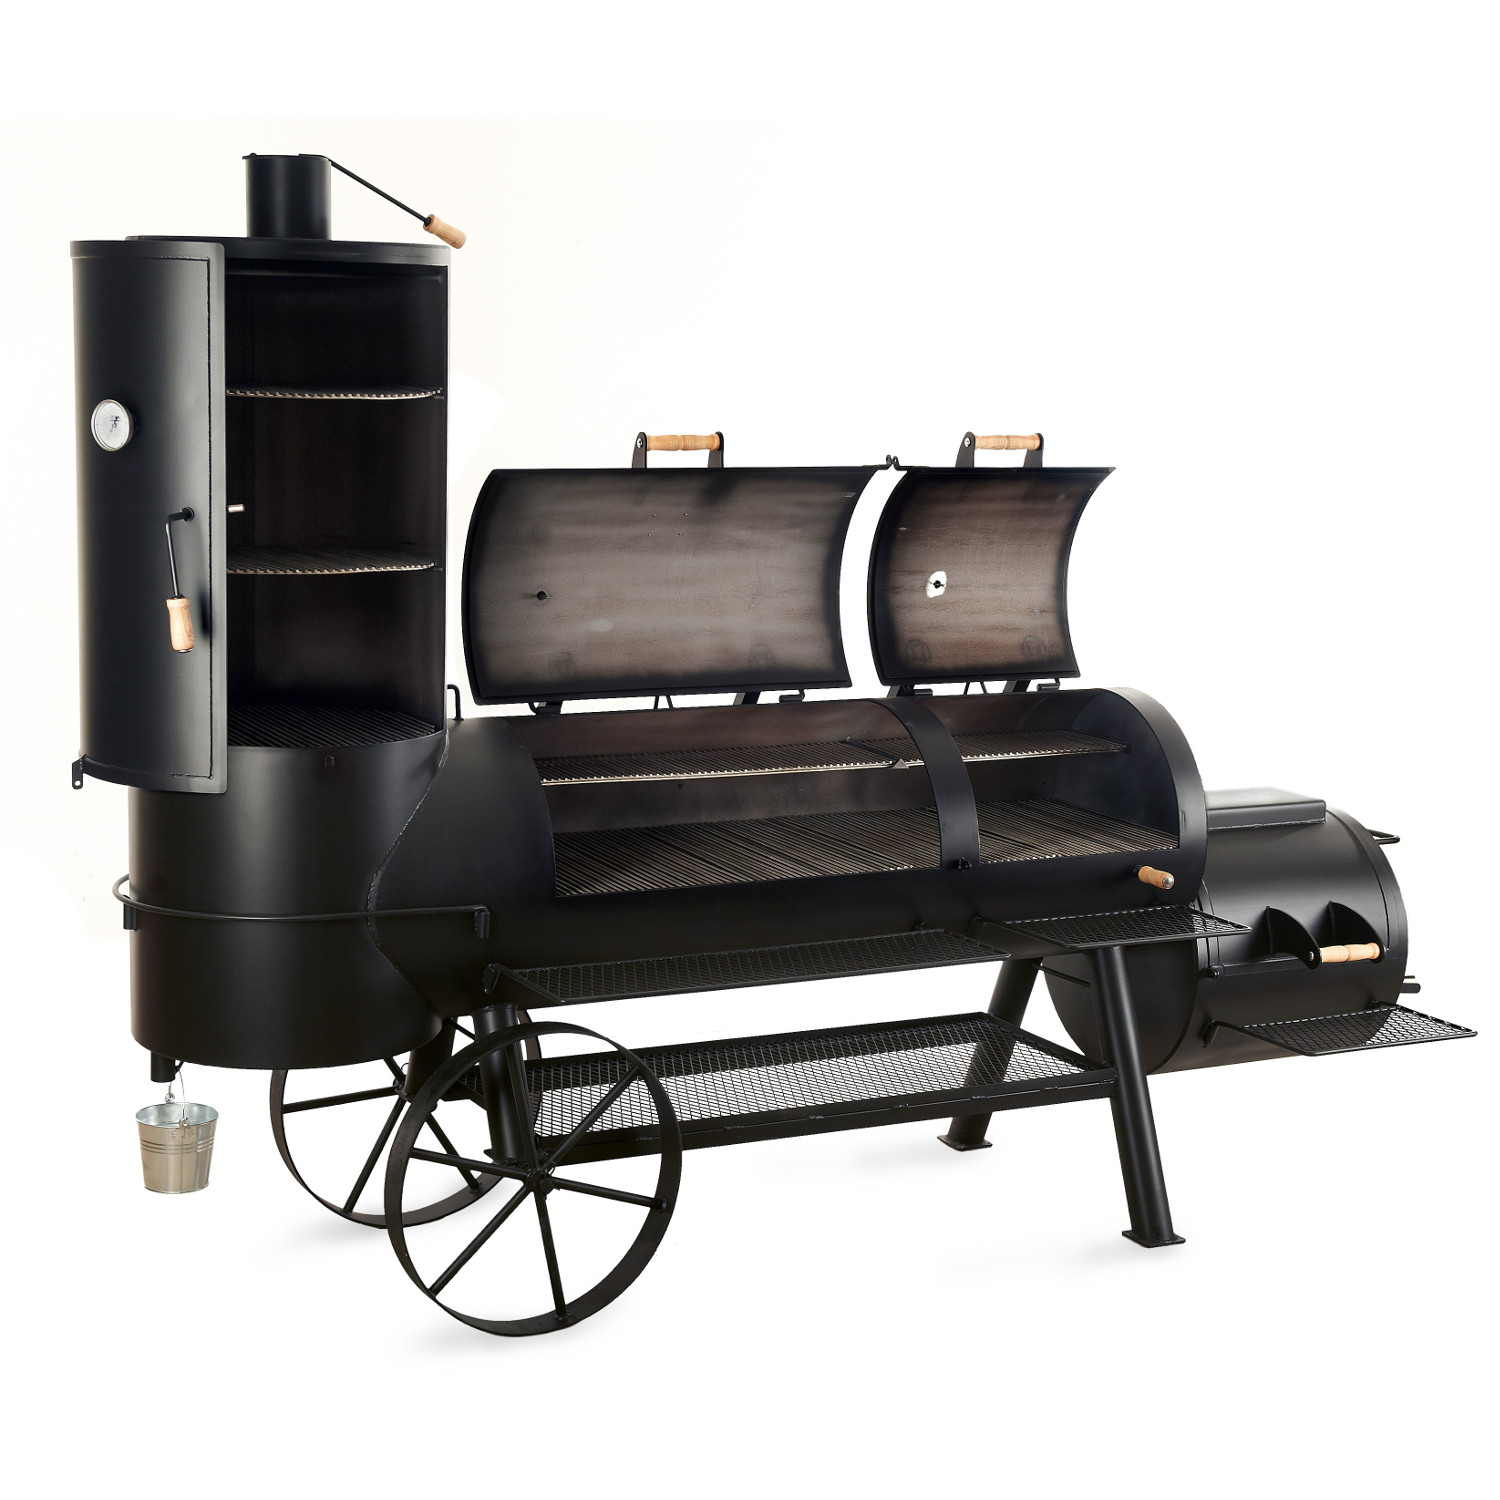 joe 39 s bbq smoker 24 extended catering smoker lieferzeit anfragen online kaufen grilljack ch. Black Bedroom Furniture Sets. Home Design Ideas